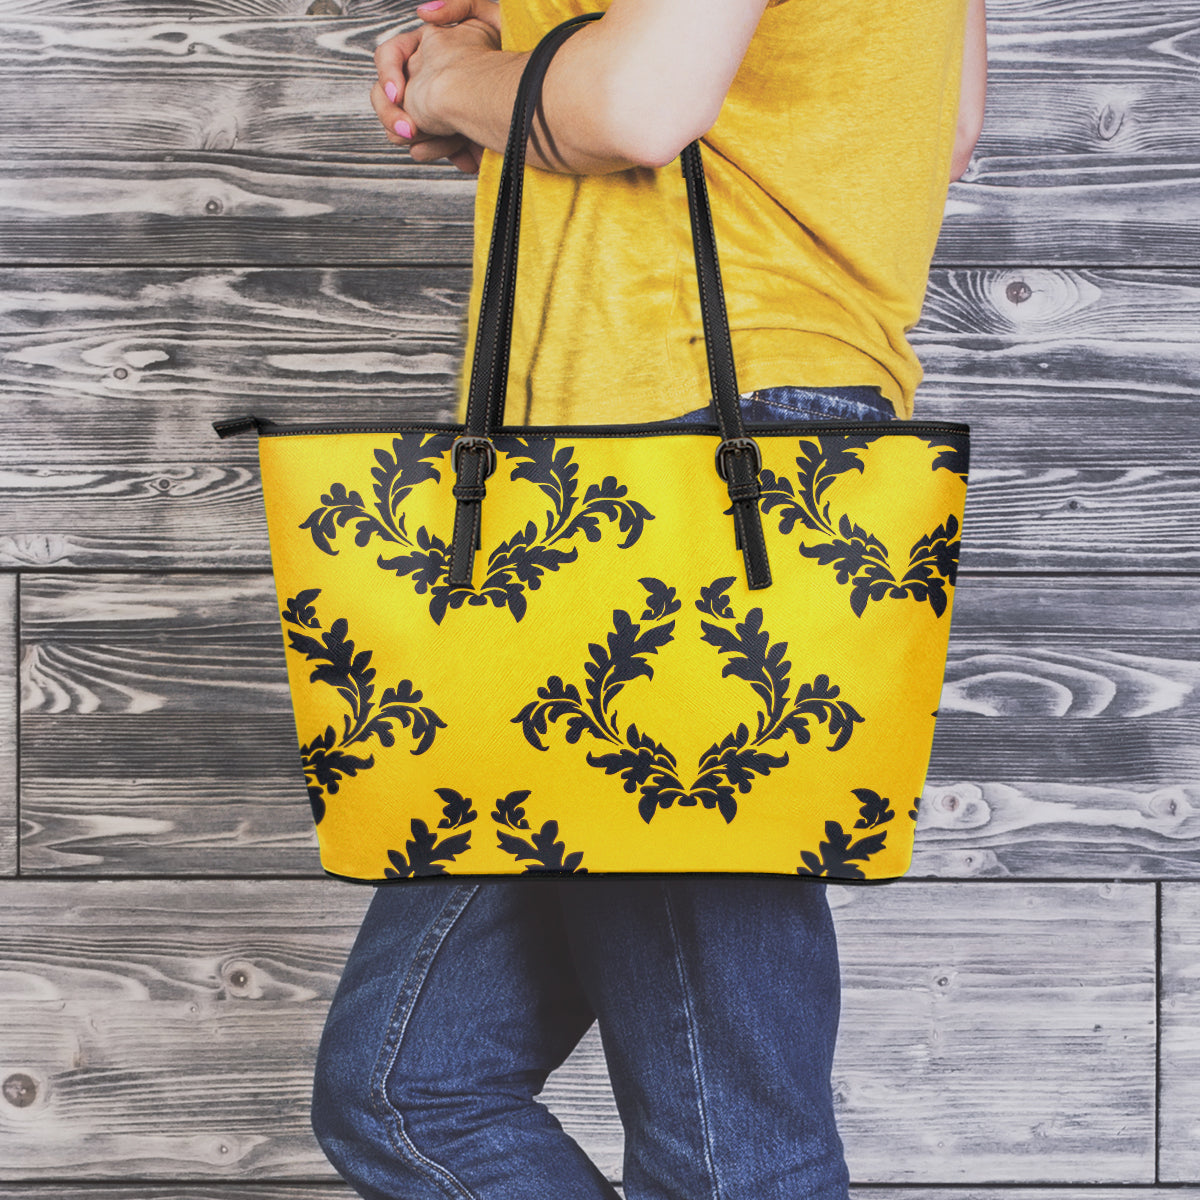 Retro Flower Small Leather Tote Bag